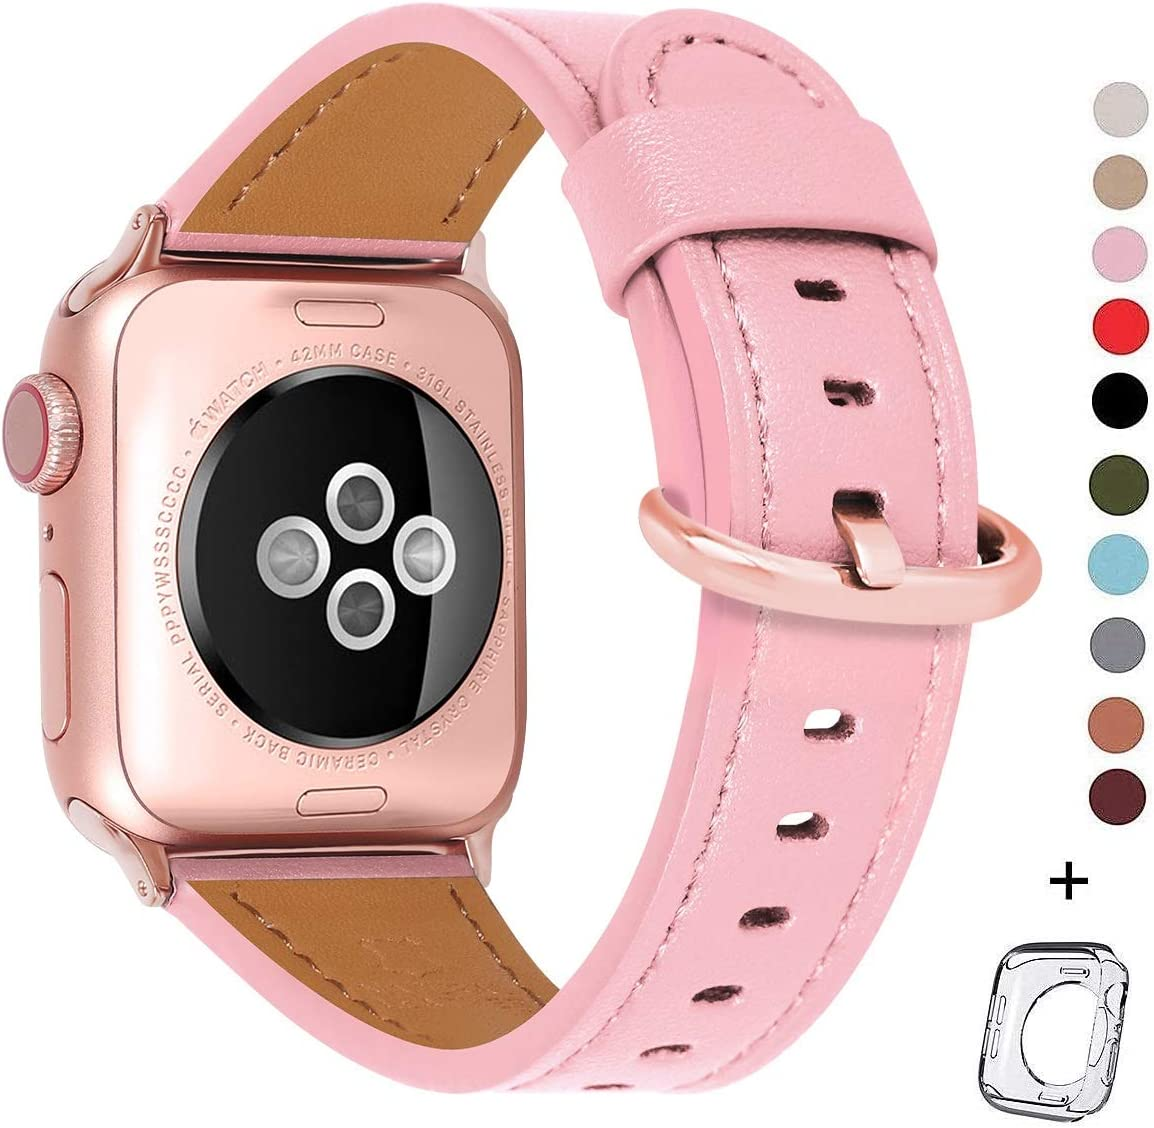 HUAFIY Compatible iWatch Band 38mm 40mm, Top Grain Leather Band Replacement Strap iWatch Series 6/ 5/ 4/ 3/2/1,SE,Sport, Edition (pink+ rose gold buckle, 38mm40mm)